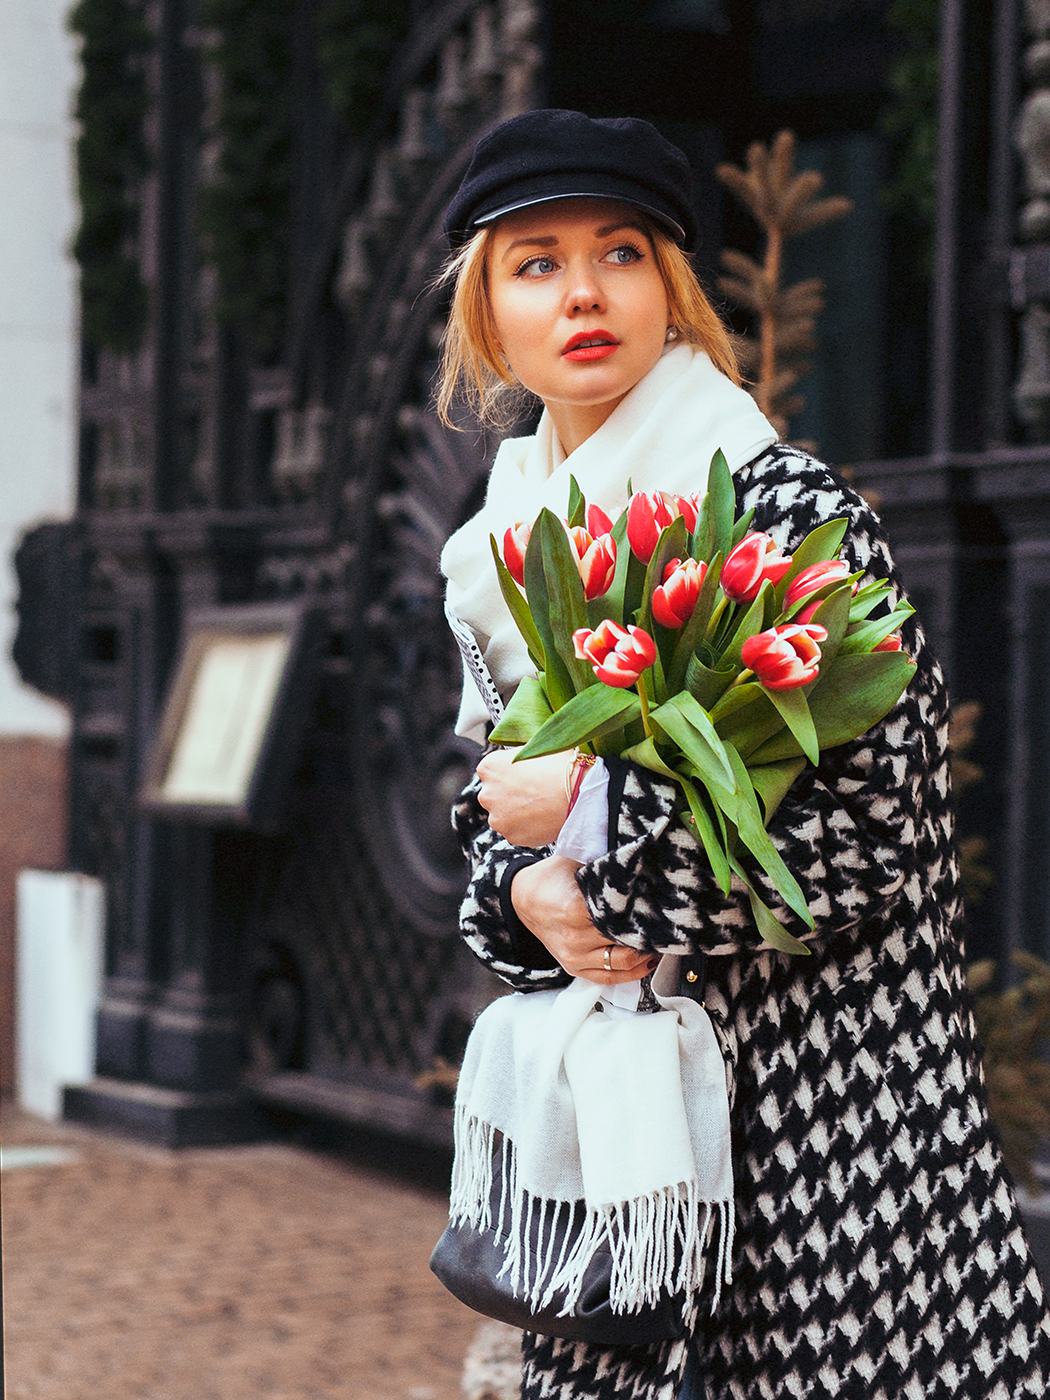 inspiration, pied-de-poule, гусиная лапка, houndstooth coat, streetstyle, spring outfit, winter streetstyle, moscow fashion week, annamidday, top fashion blogger, top russian fashion blogger, фэшн блогер, русский блогер, известный блогер, топовый блогер, russian bloger, top russian blogger, streetfashion, bobbi brown, lipstick, помады бобби браун, russian fashion blogger, blogger, fashion, style, fashionista, модный блогер, российский блогер, ТОП блогер, ootd, lookoftheday, look, популярный блогер, российский модный блогер, annamidday, russian girl, с чем носить пальто в гусиную лапку, французский стиль, girly, how to wear hat, pied-de-poule coat, красивая девушка, русская девушка, fashion week, MBFW, Moscow Fashion Week 2015, Mercedes-Benz Fashion Week